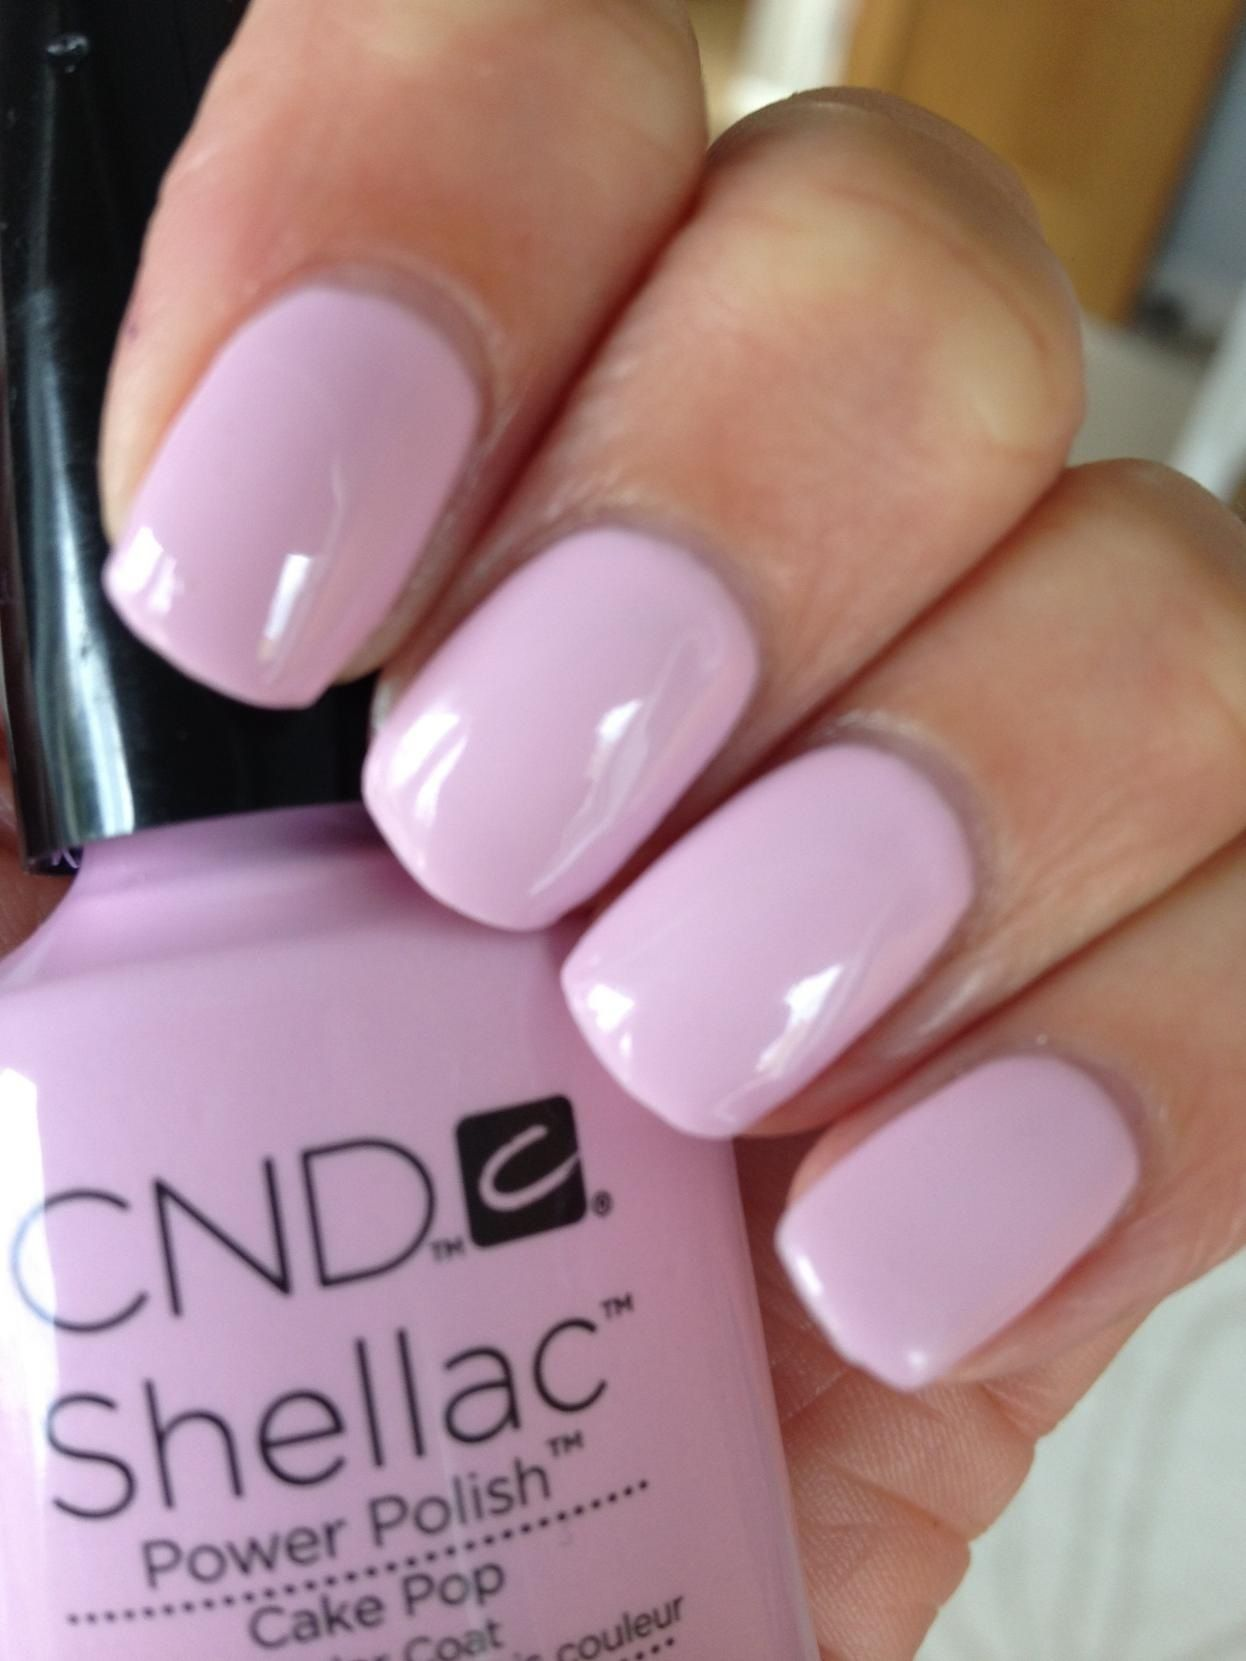 Shellac Cake Pop Amazing Colour For Summer Cnd Shellac Nails Shellac Nail Colors Pink Shellac